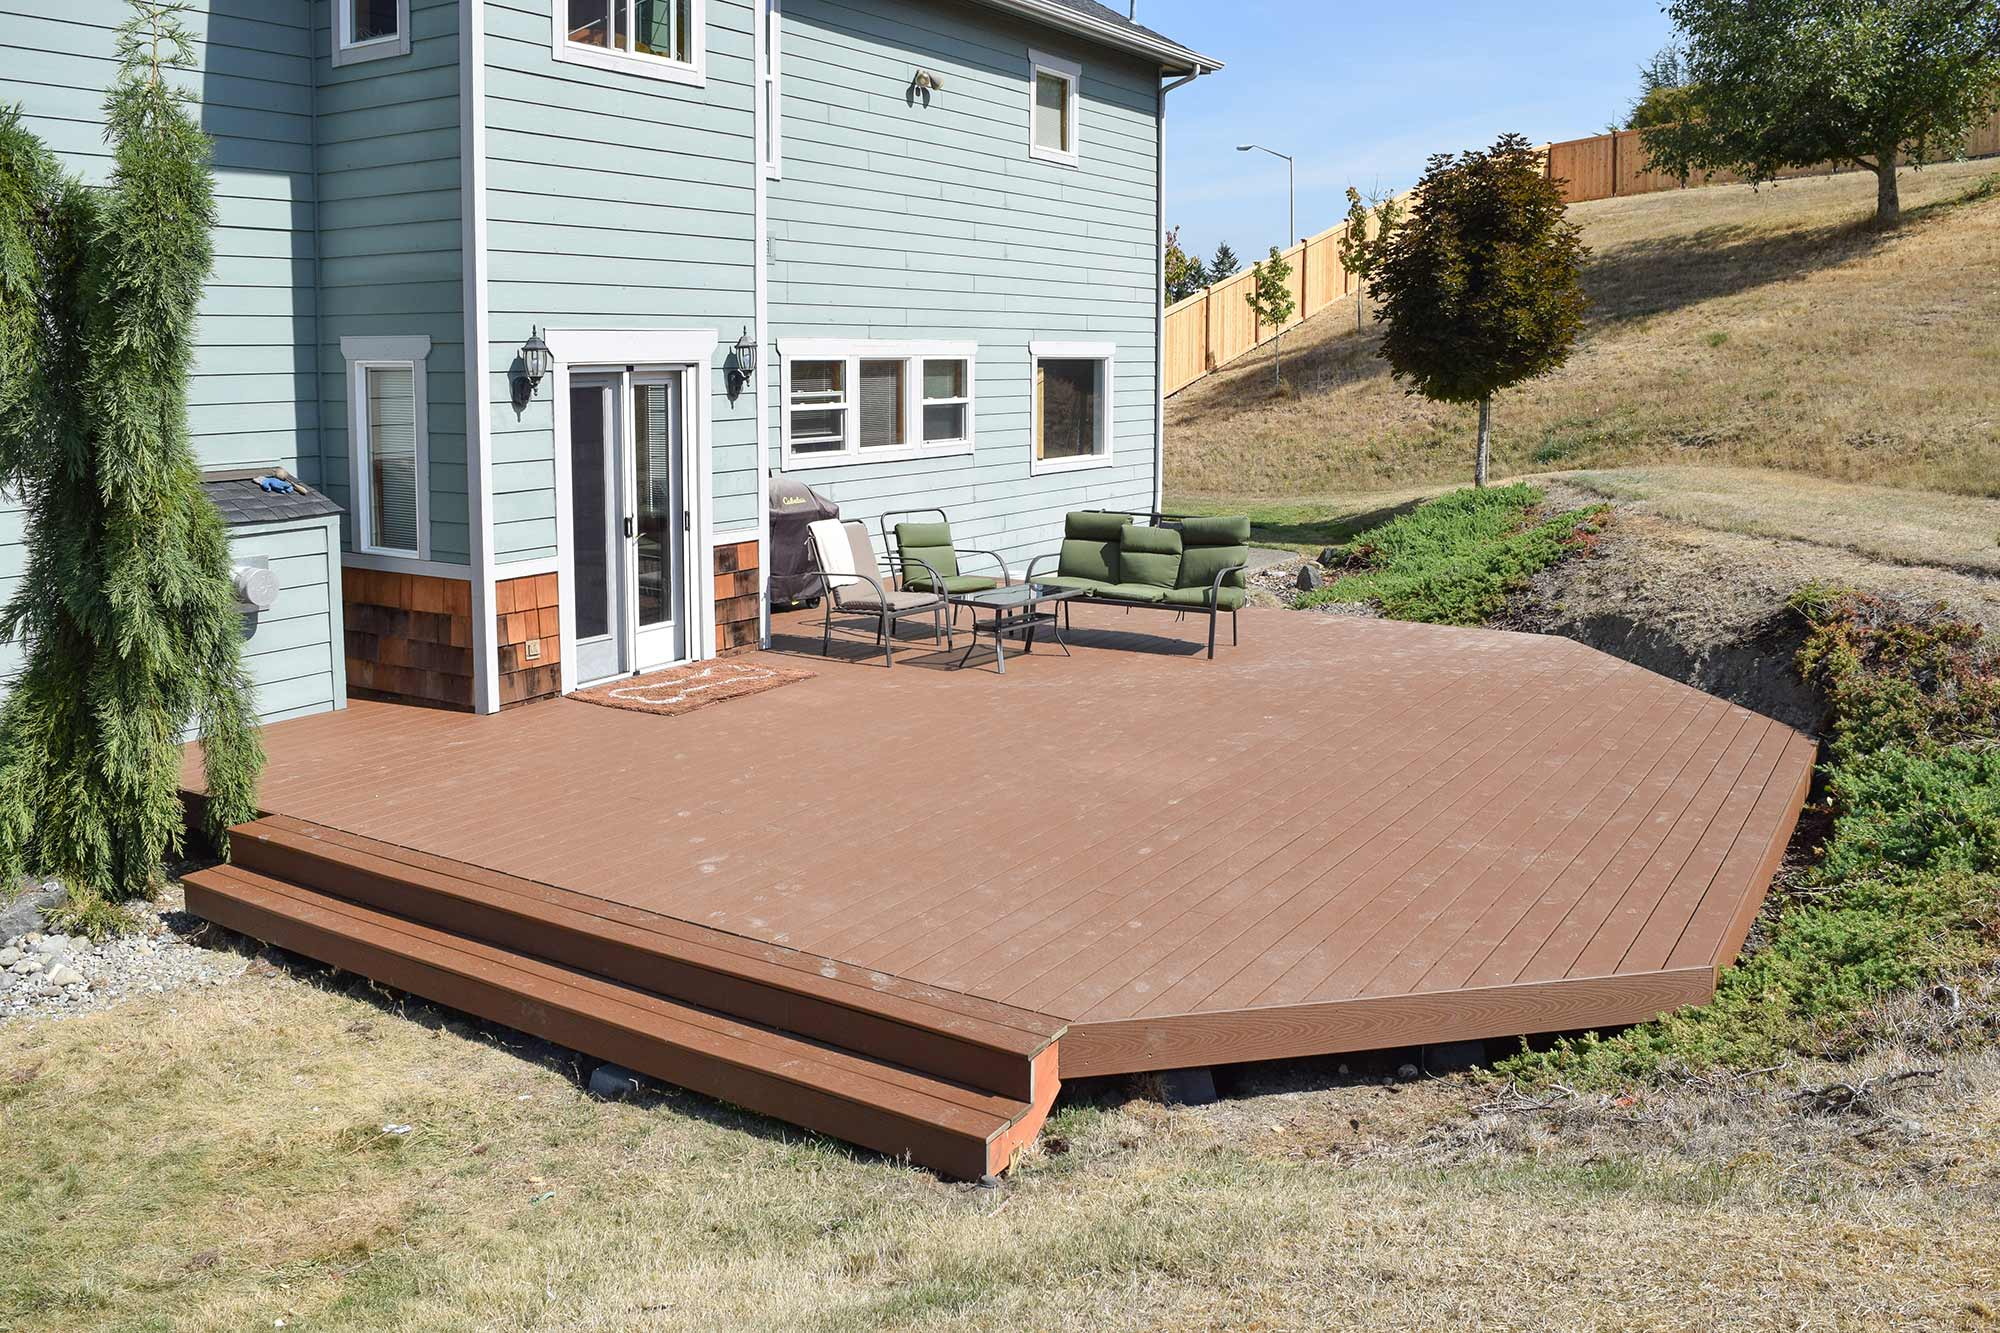 AJB Landscaping & Fence installed this Trex composite deck with angled corners to contour the existing grade of the hill.